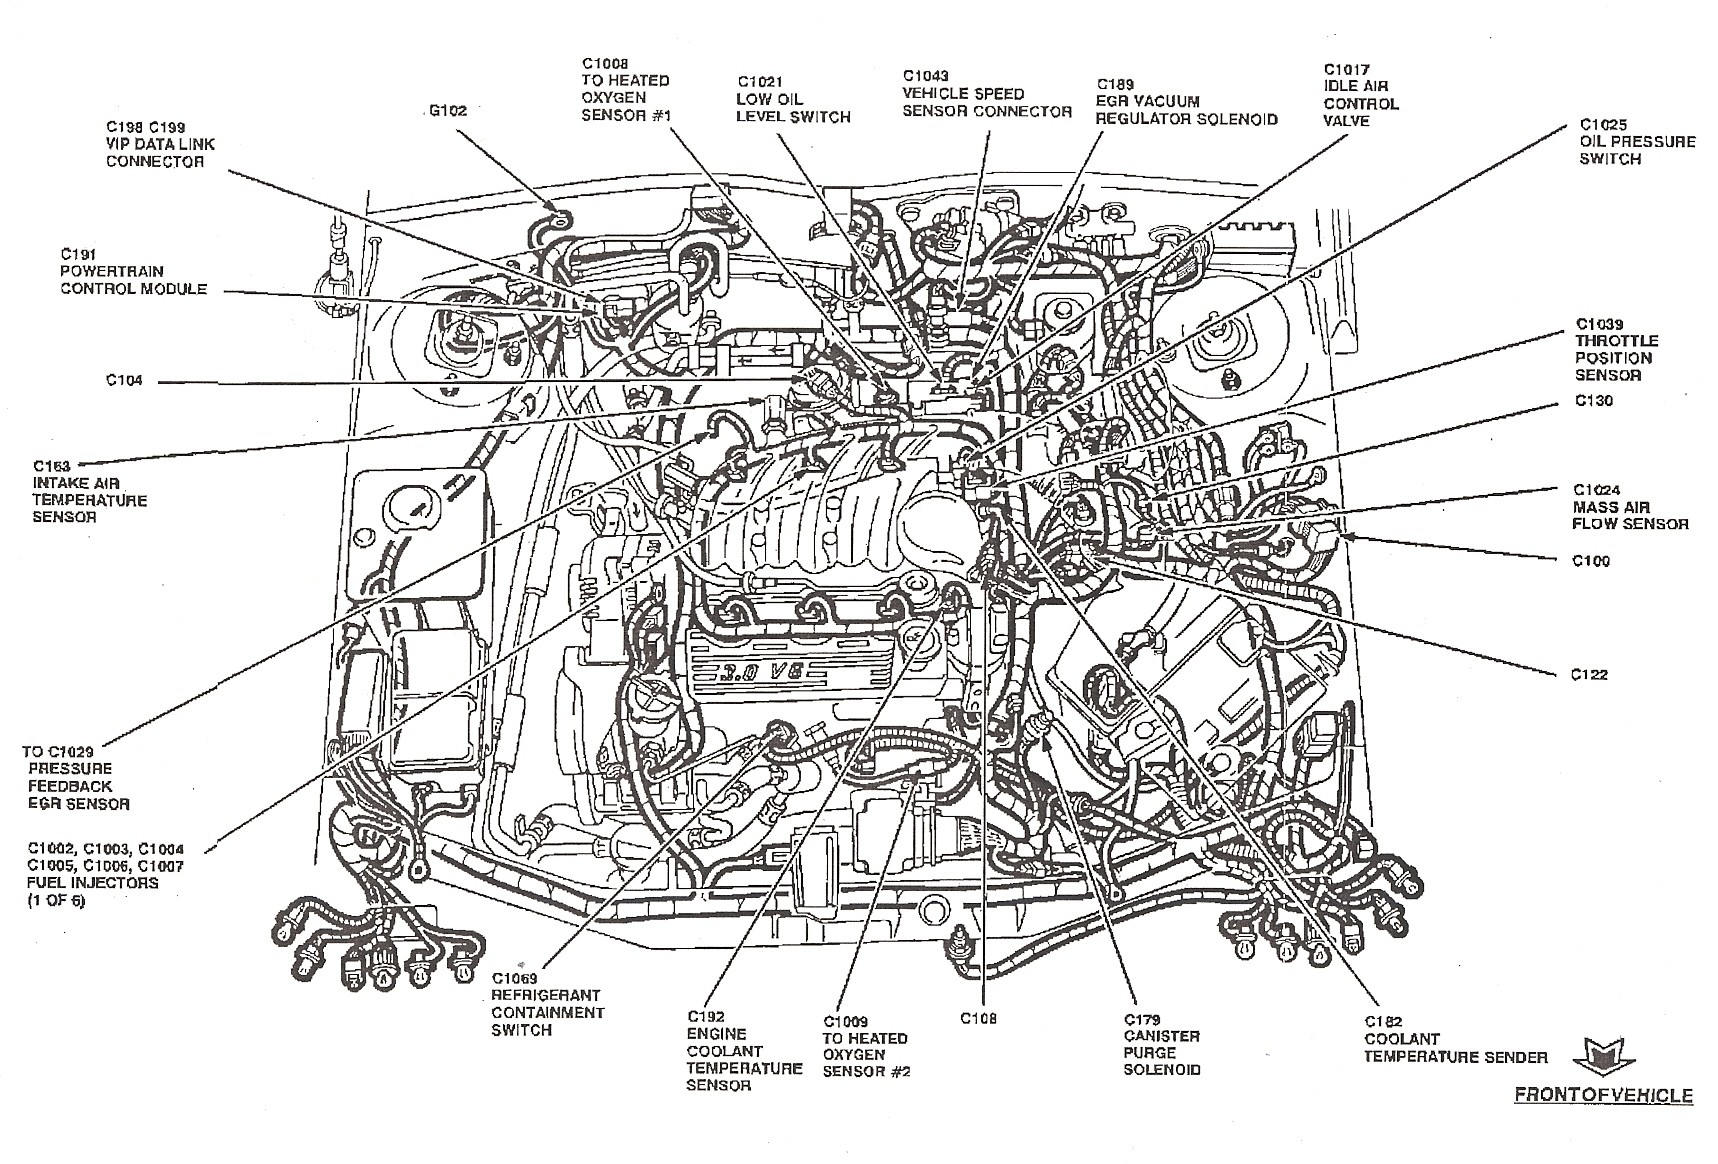 ford taurus 2008 parts diagram application wiring diagram \u2022 2003 ford taurus wiring diagram 2001 taurus engine diagram 2001 ford taurus engine diagram wiring rh parsplus co 2008 ford taurus 3 5l engine 2008 ford taurus 3 5l engine